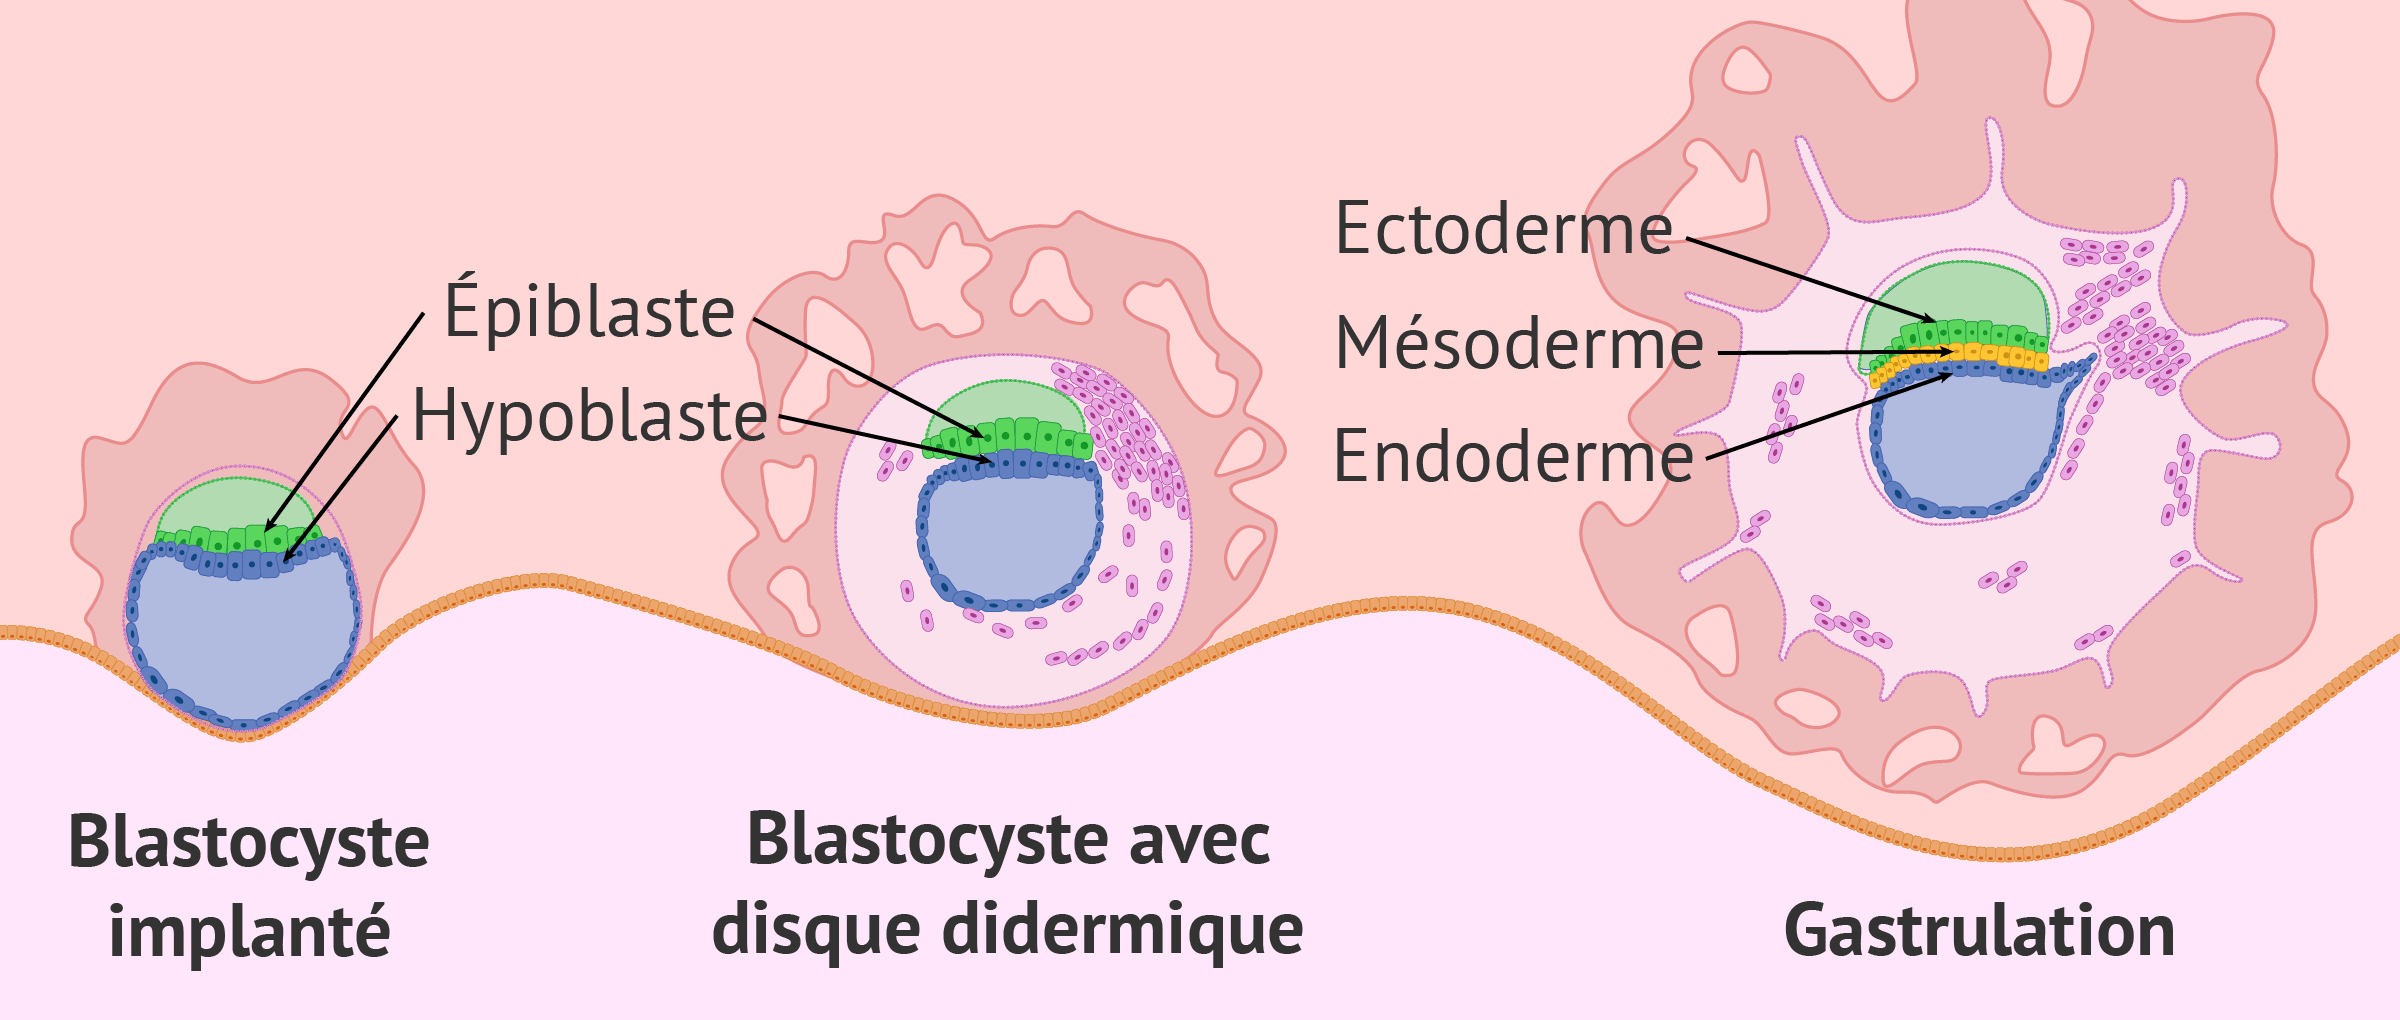 Implantation et gastrulation embryonnaire